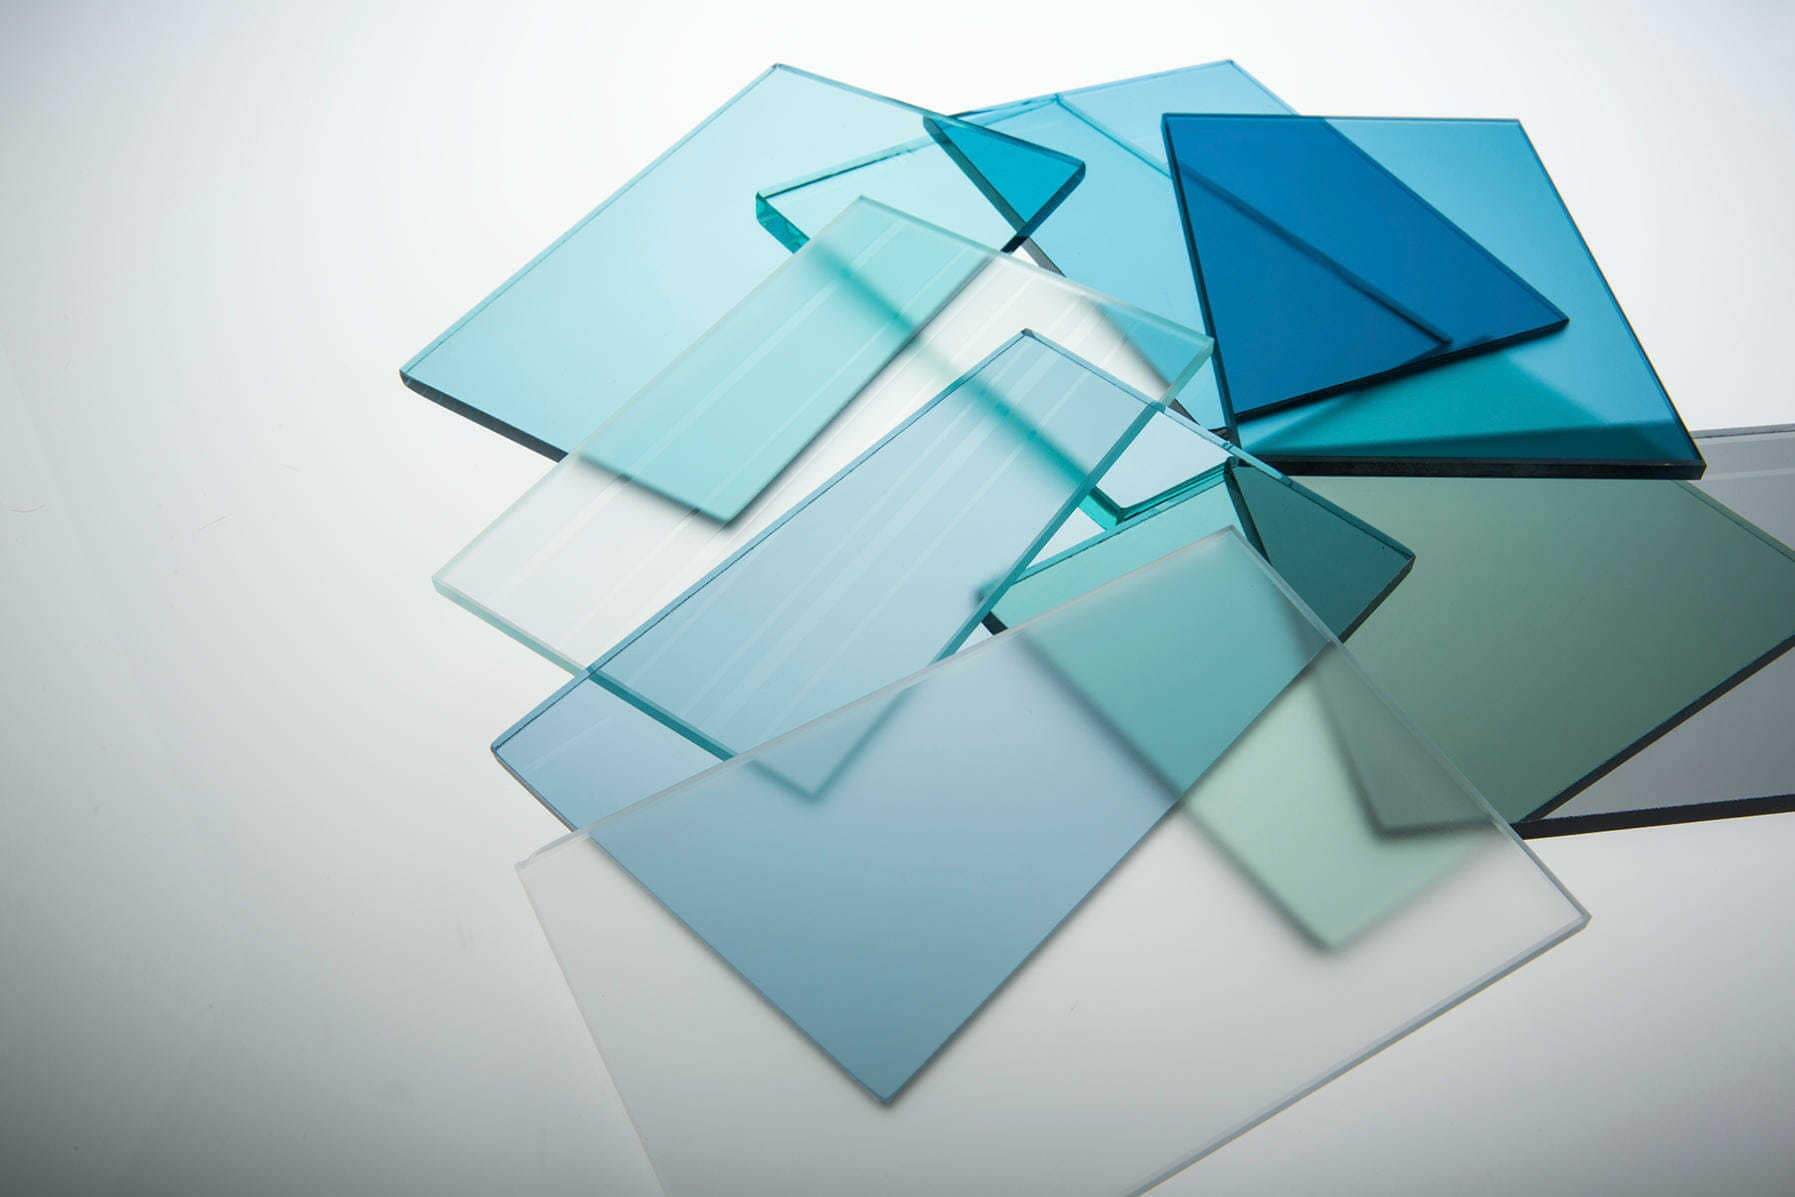 Glass tempering technology